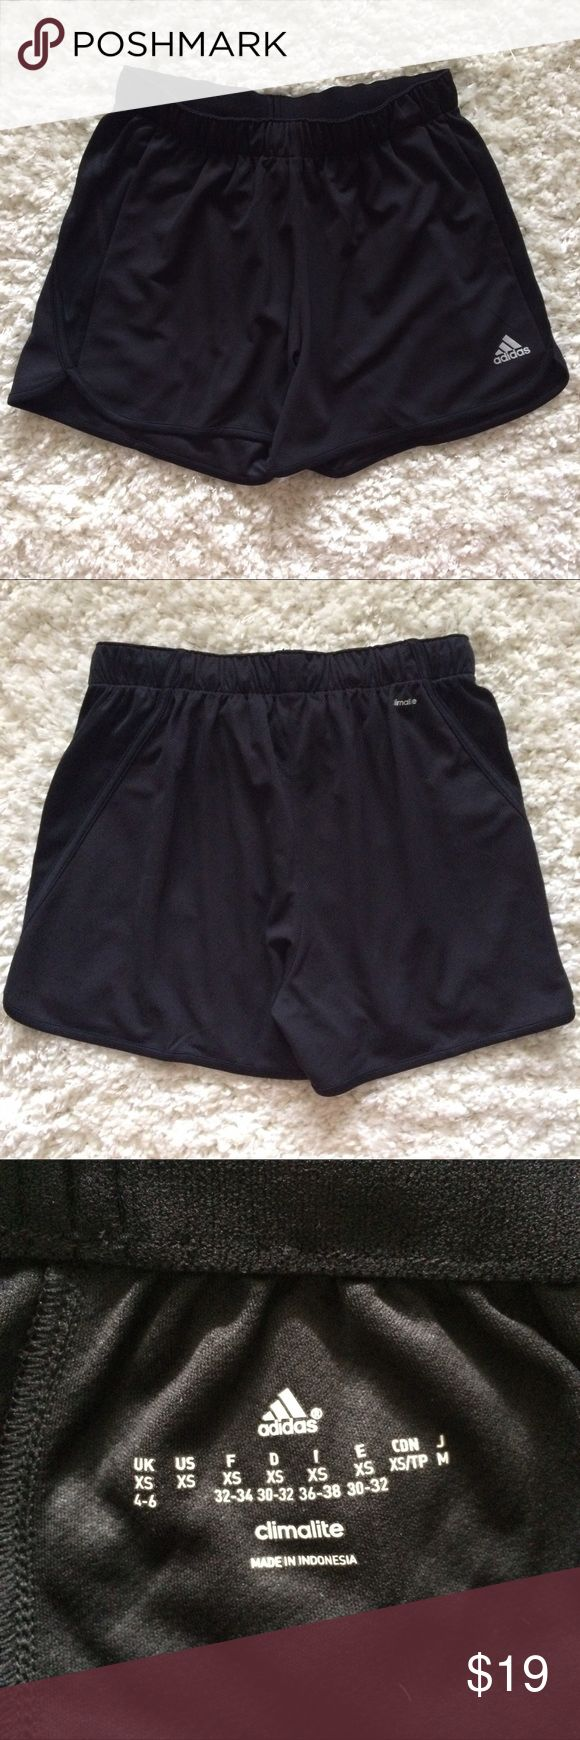 NWOT Black Adidas Climalite Shorts, size XS Black Adidas Climalite woven shorts.  Size XS.  NWOT! Purchased but never worn.   Make me a (reasonable) offer! 10% off 3+ item bundles!  No trades please! Will only conduct business on Poshmark. 😊 adidas Shorts